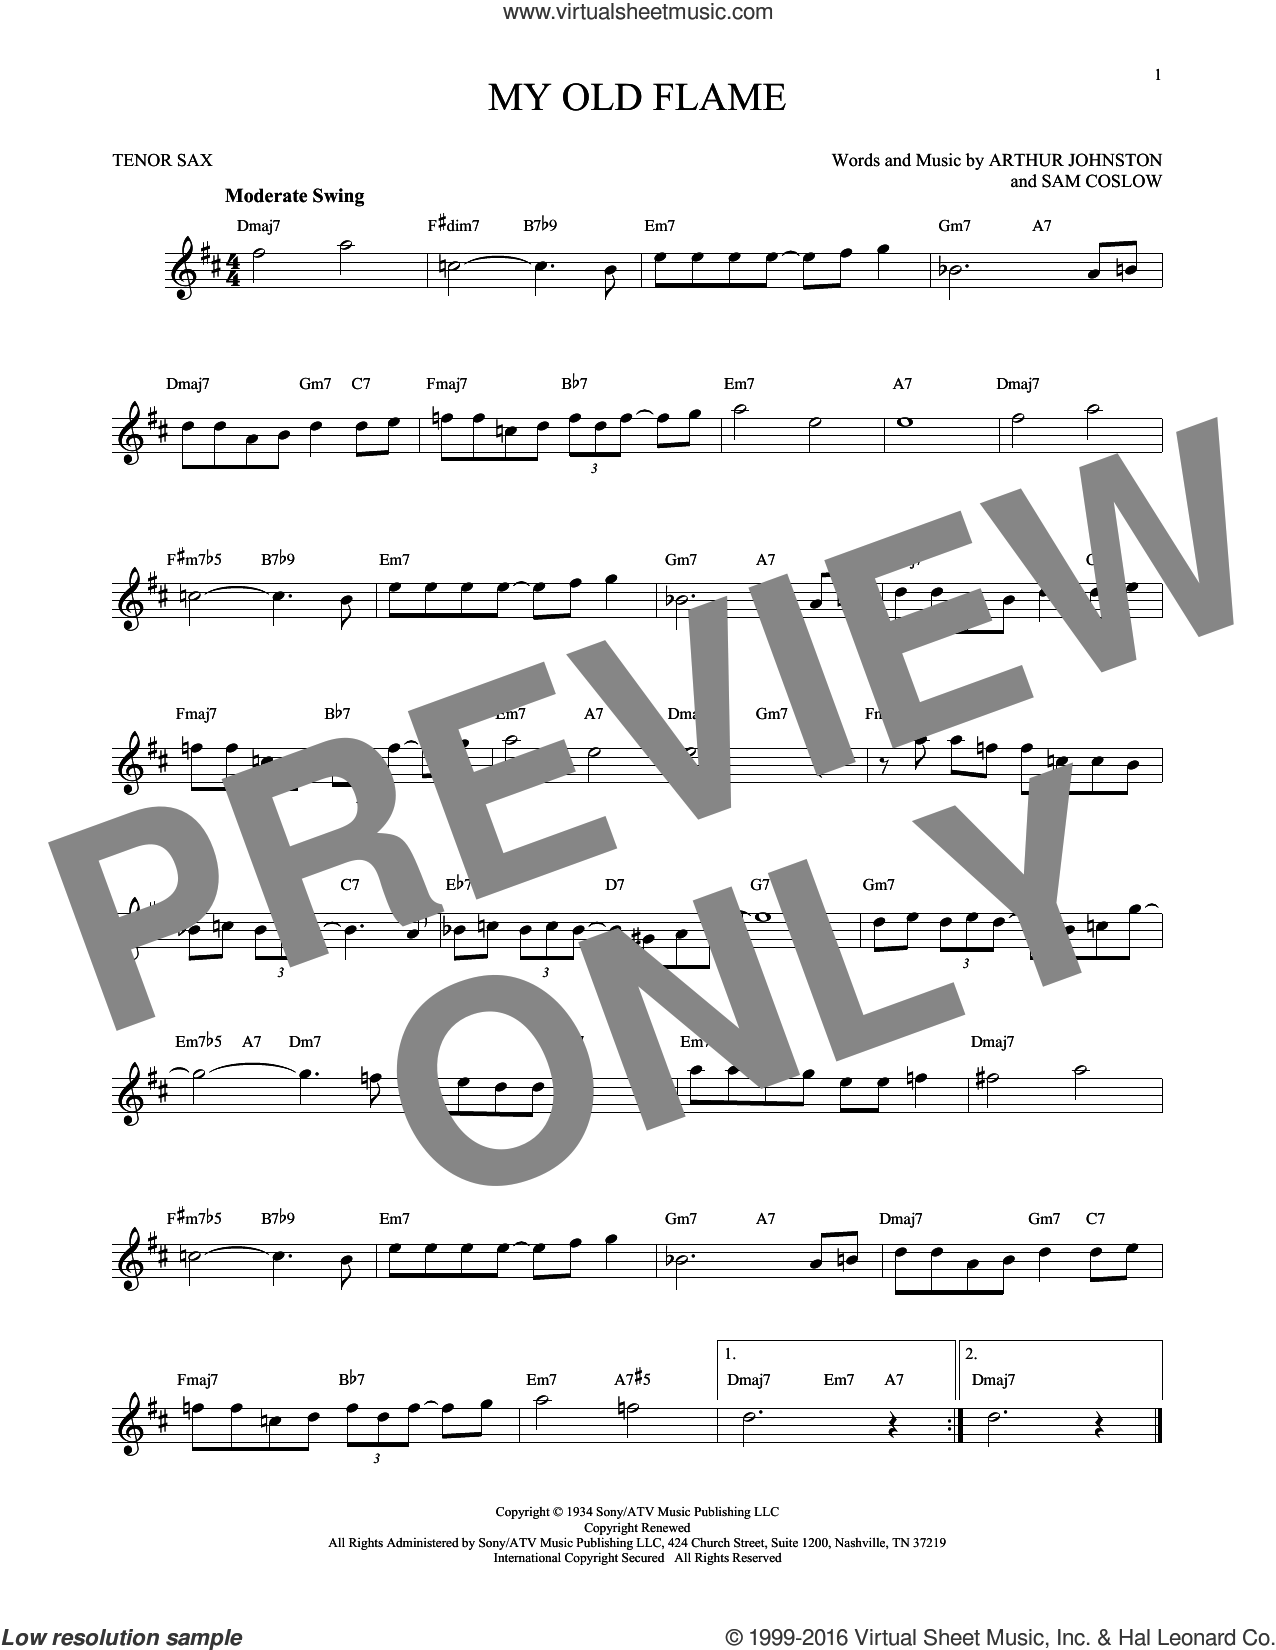 My Old Flame sheet music for tenor saxophone solo by Arthur Johnston, Peggy Lee and Sam Coslow, intermediate skill level